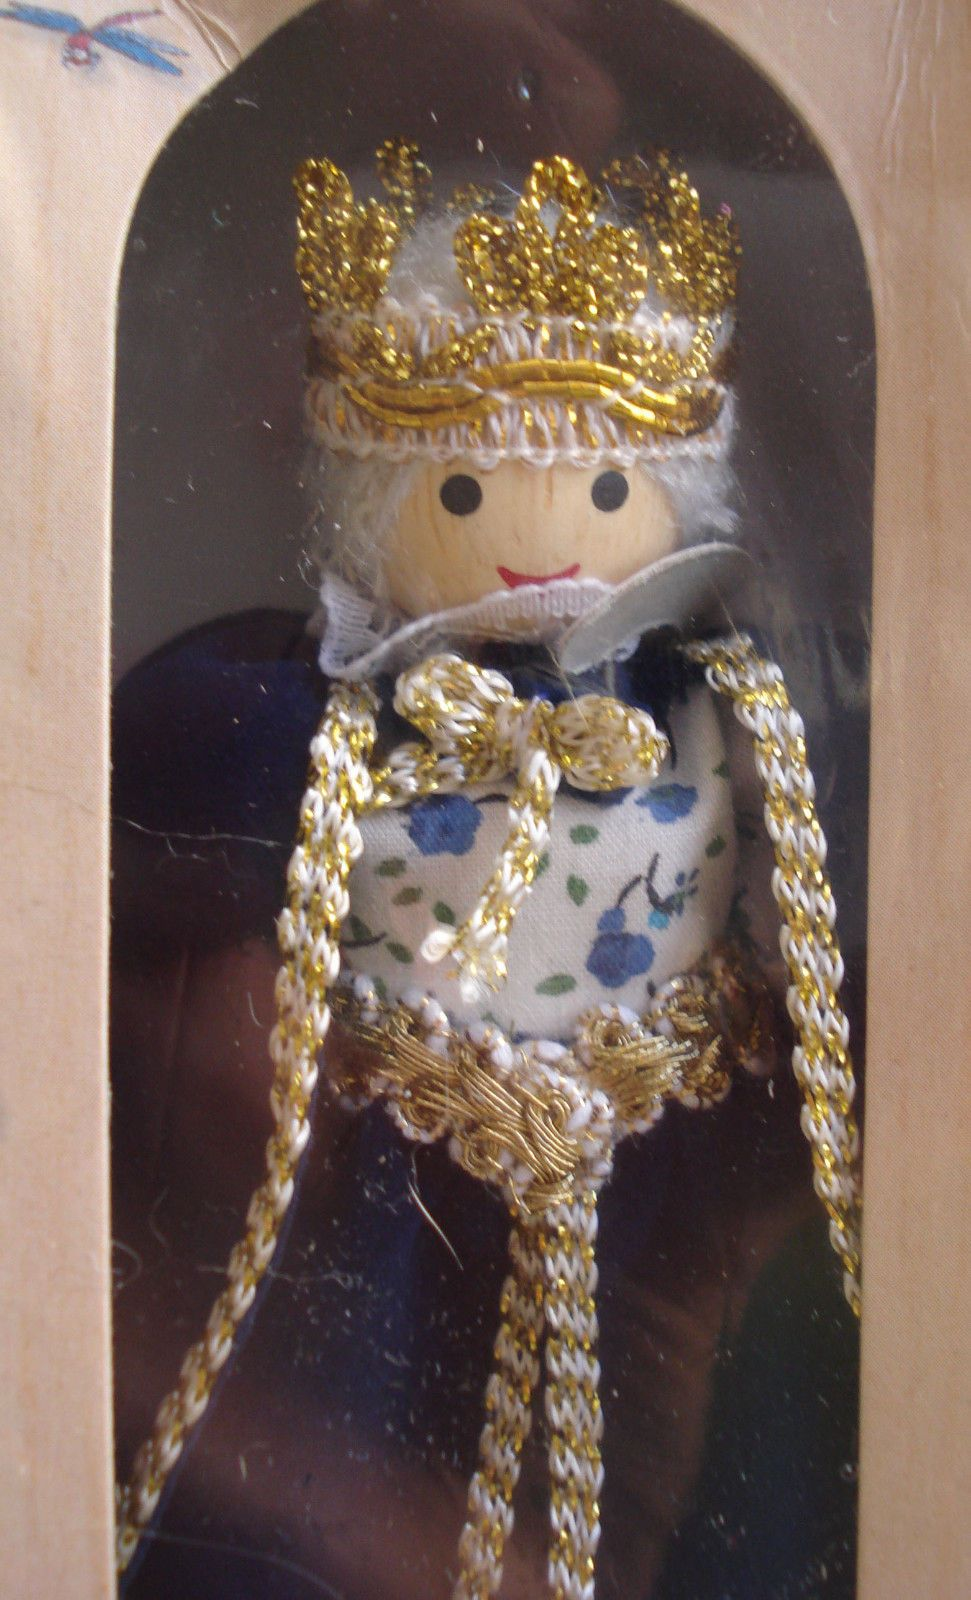 Queen Doll Bendable Poseable Wooden Made By Voila 5 Tall Dolls Bendable Made